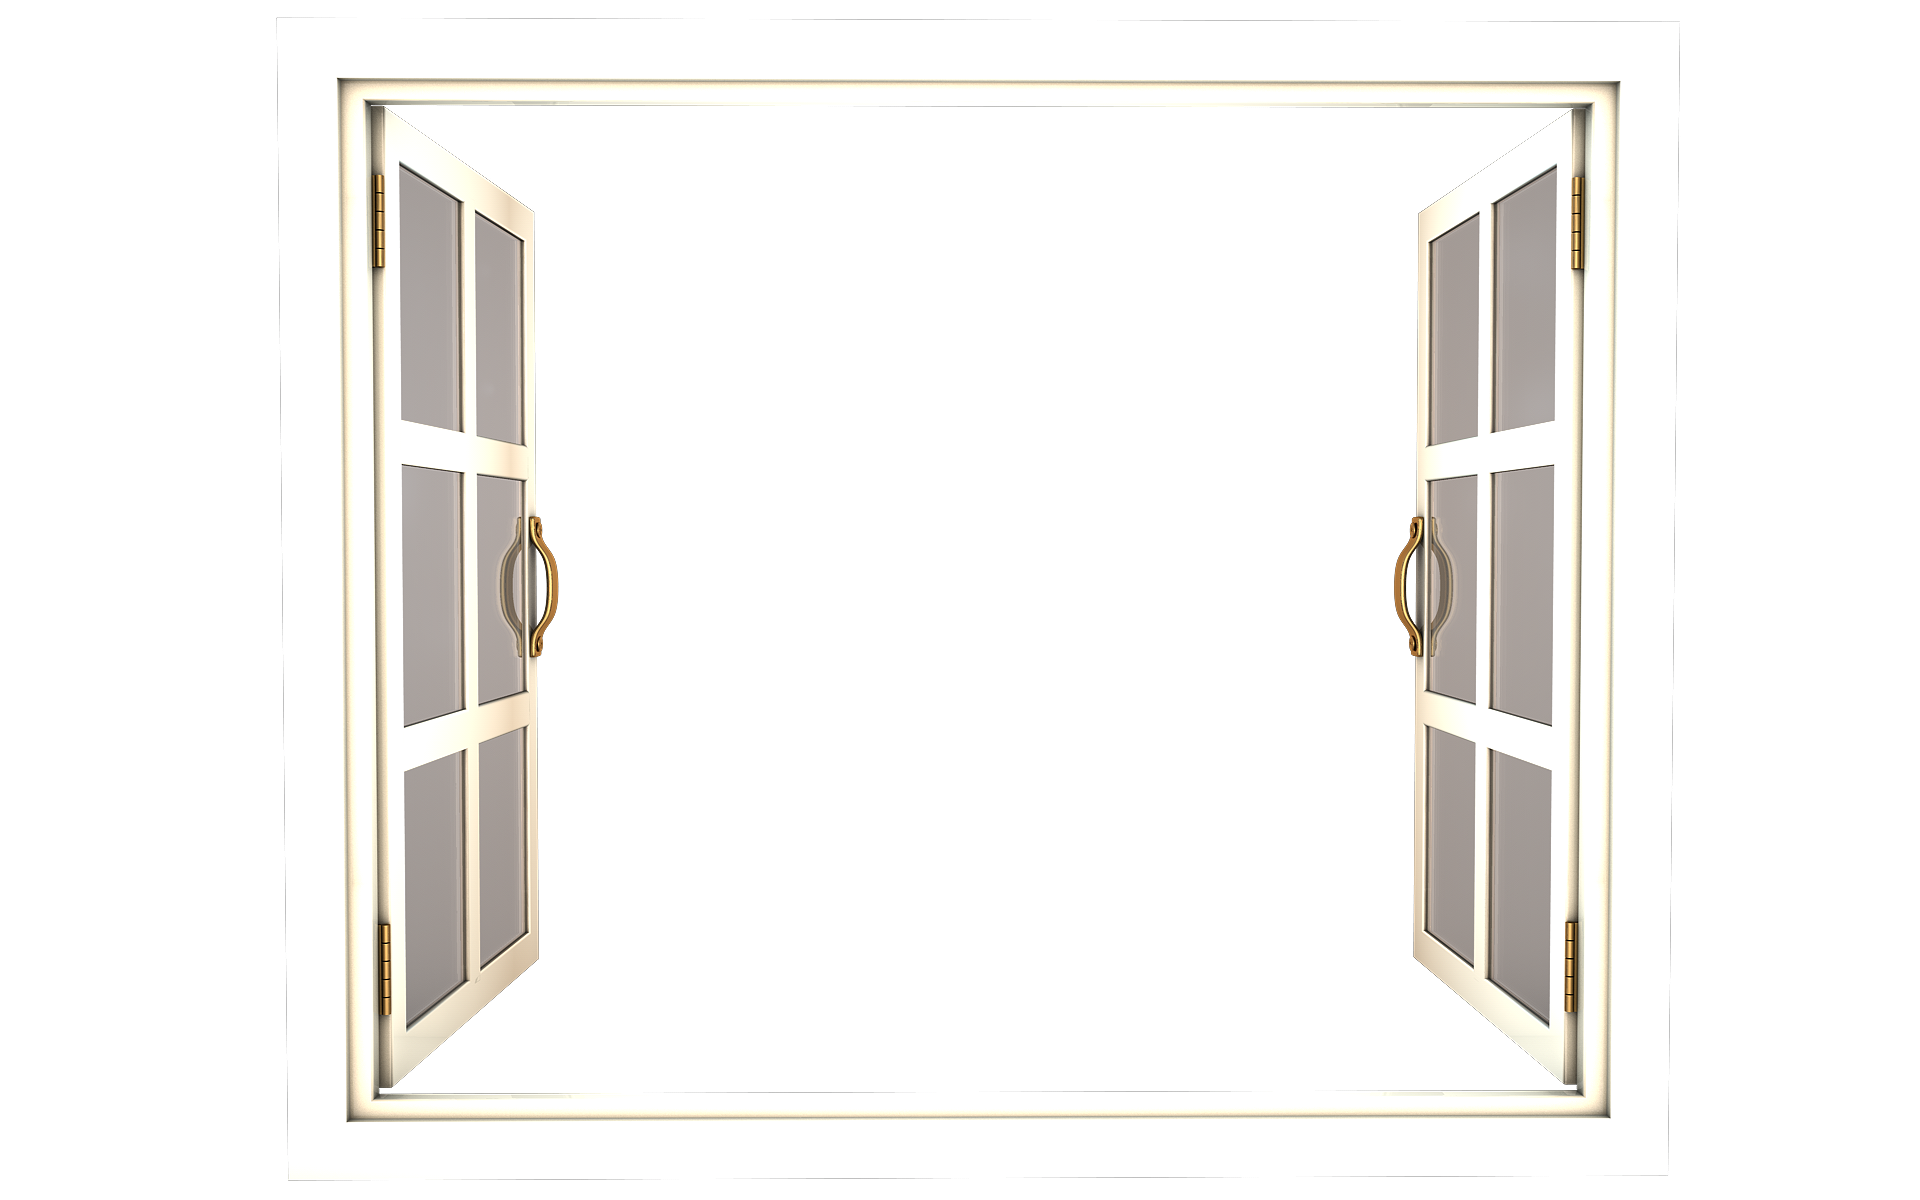 window hd png transparent window hd images. | pluspng